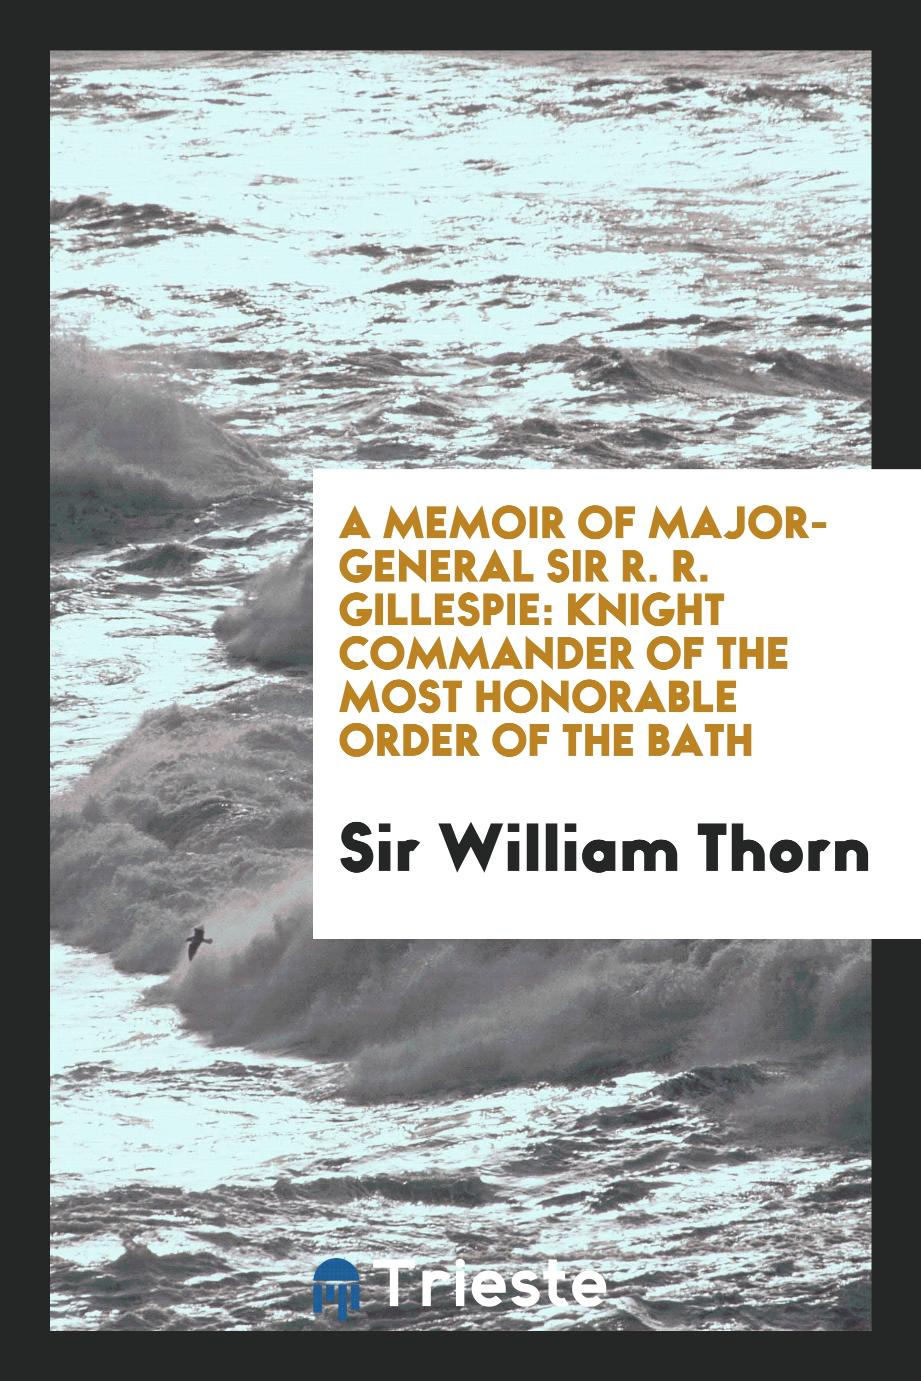 A Memoir of Major-General Sir R. R. Gillespie: Knight Commander of the Most Honorable Order of the Bath